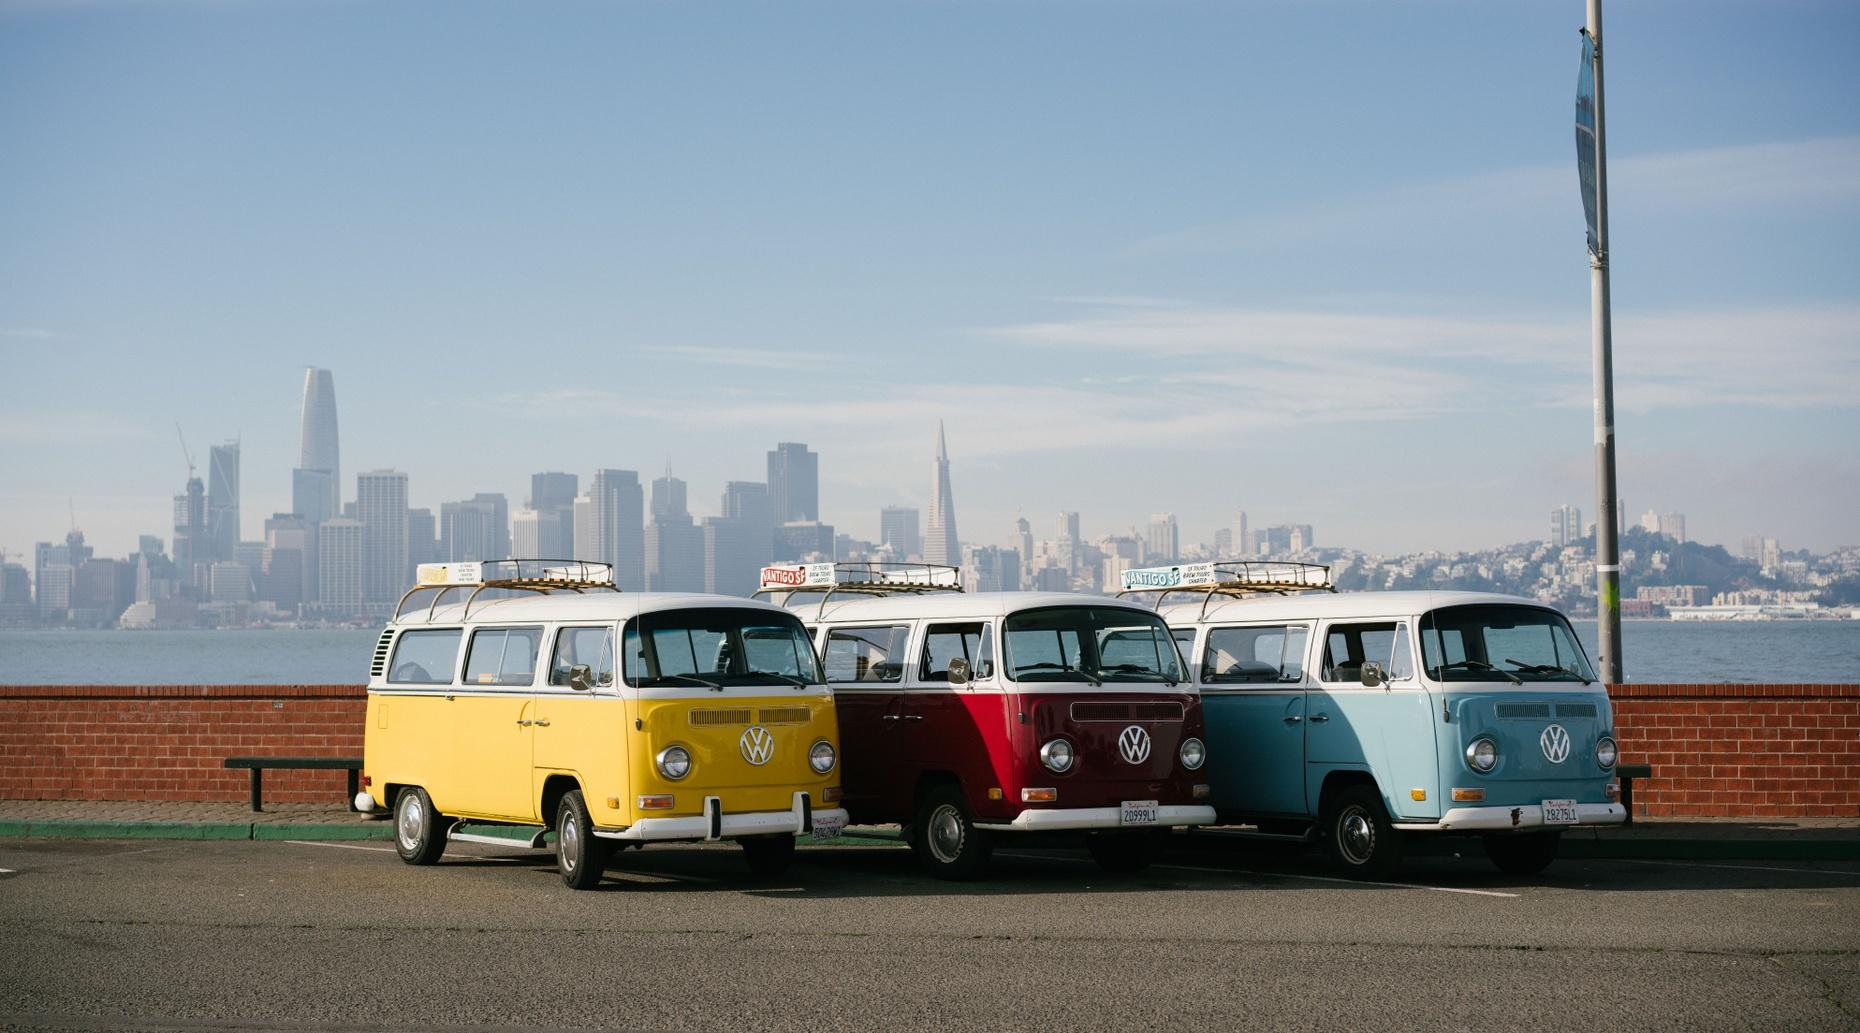 San Francisco Guided Tour in a Classic VW Van